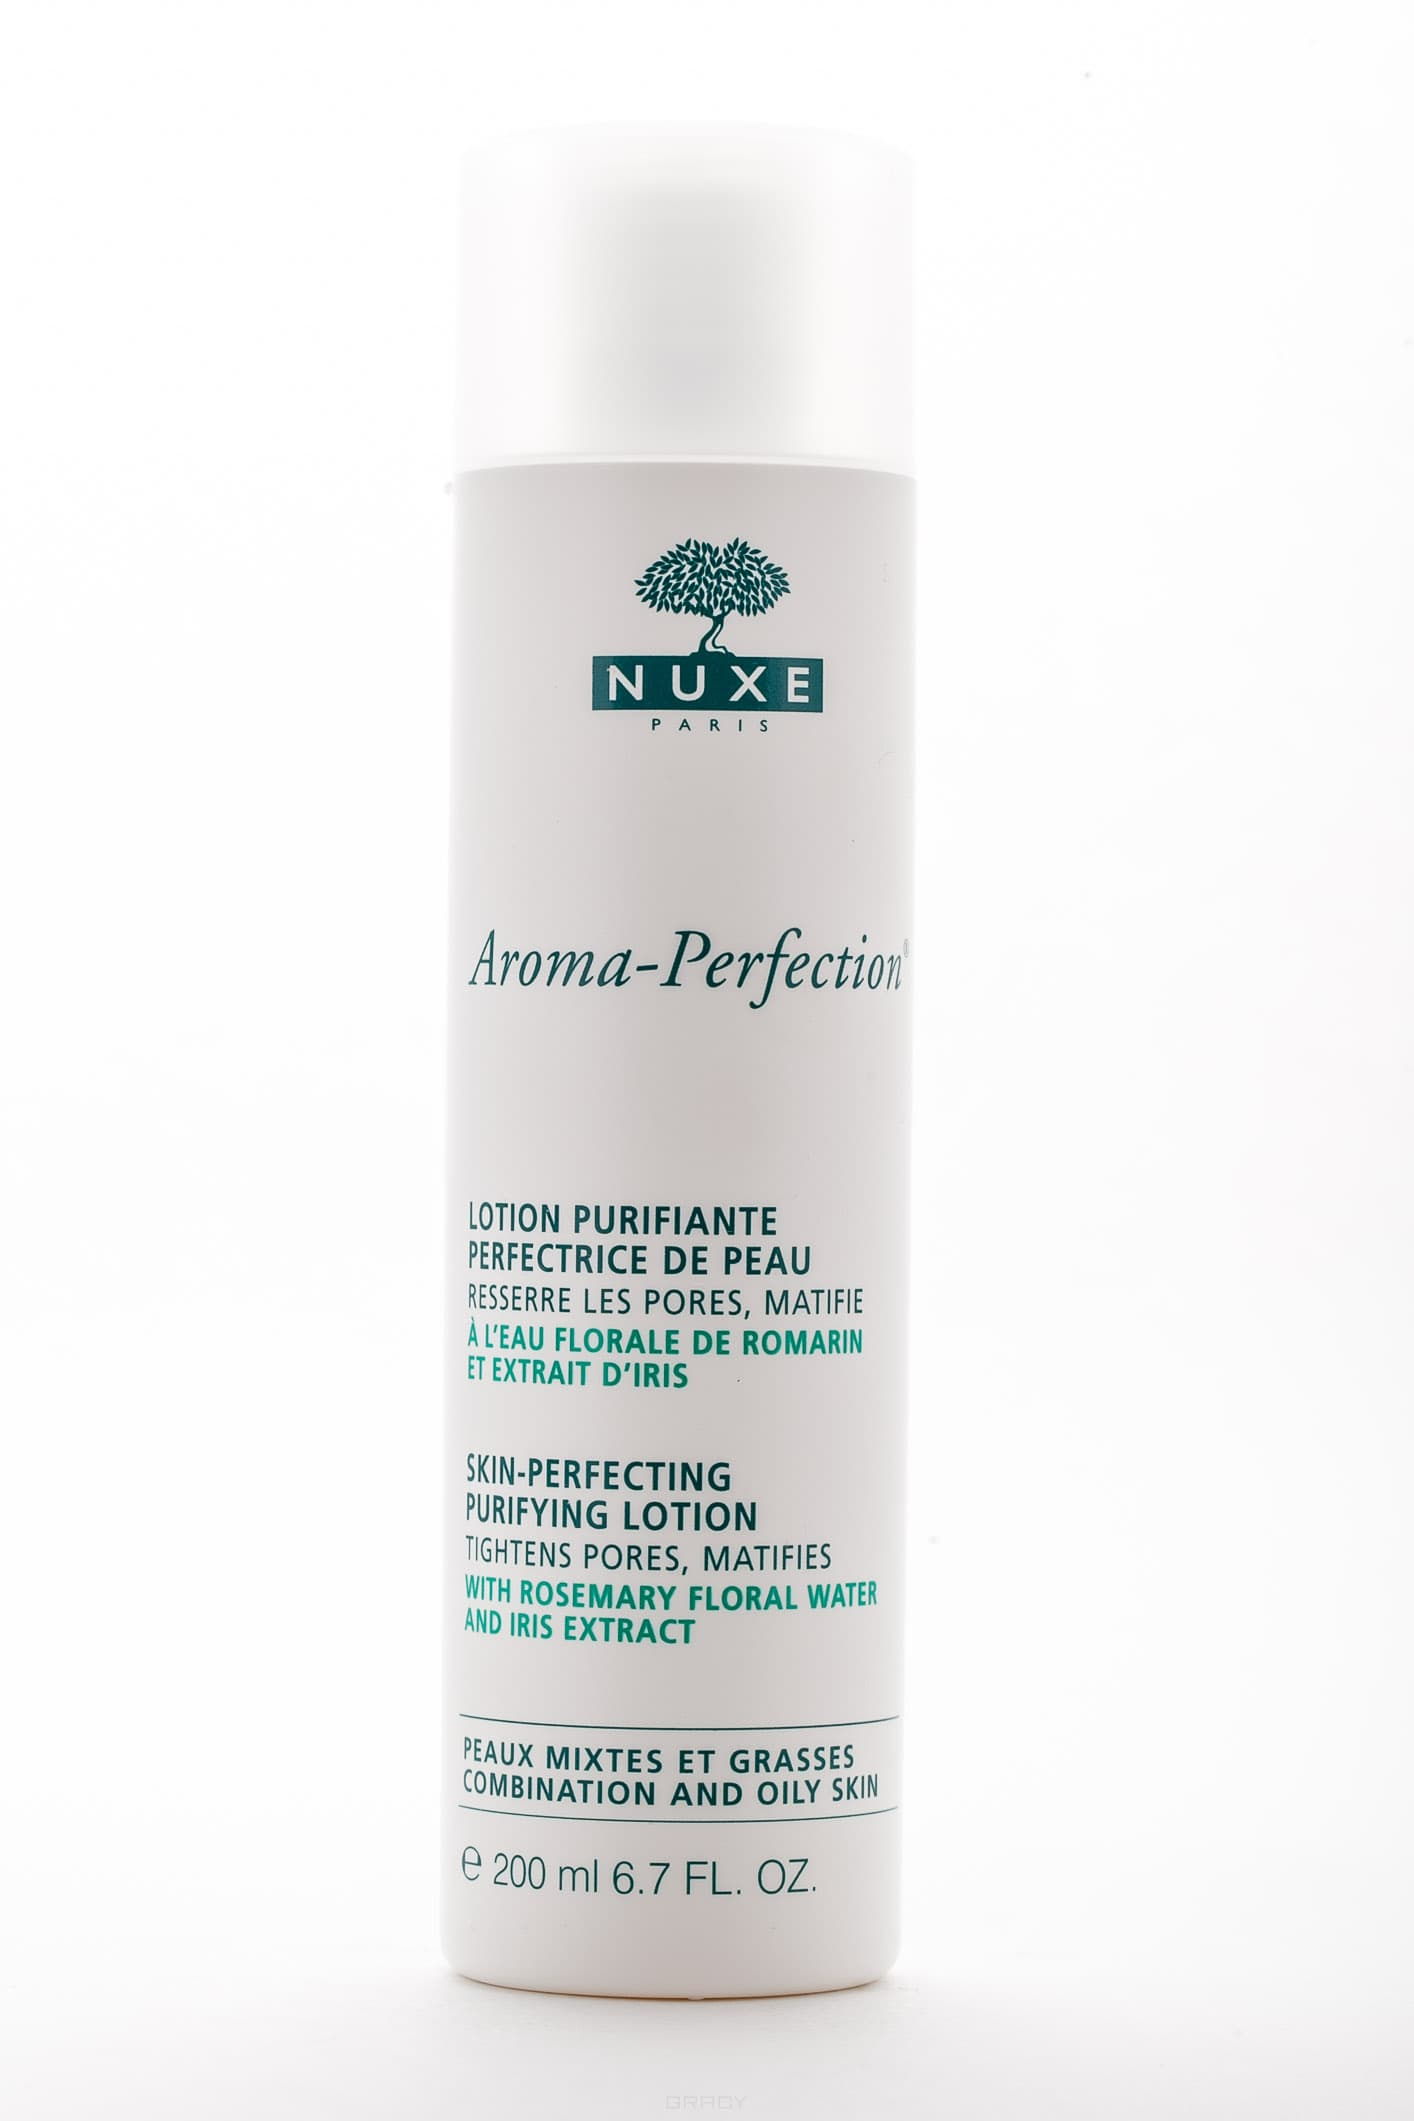 Nuxe Матирующий лосьон Aroma-Perfection, 200 мл скраб nuxe gommage corps fondant объем 200 мл